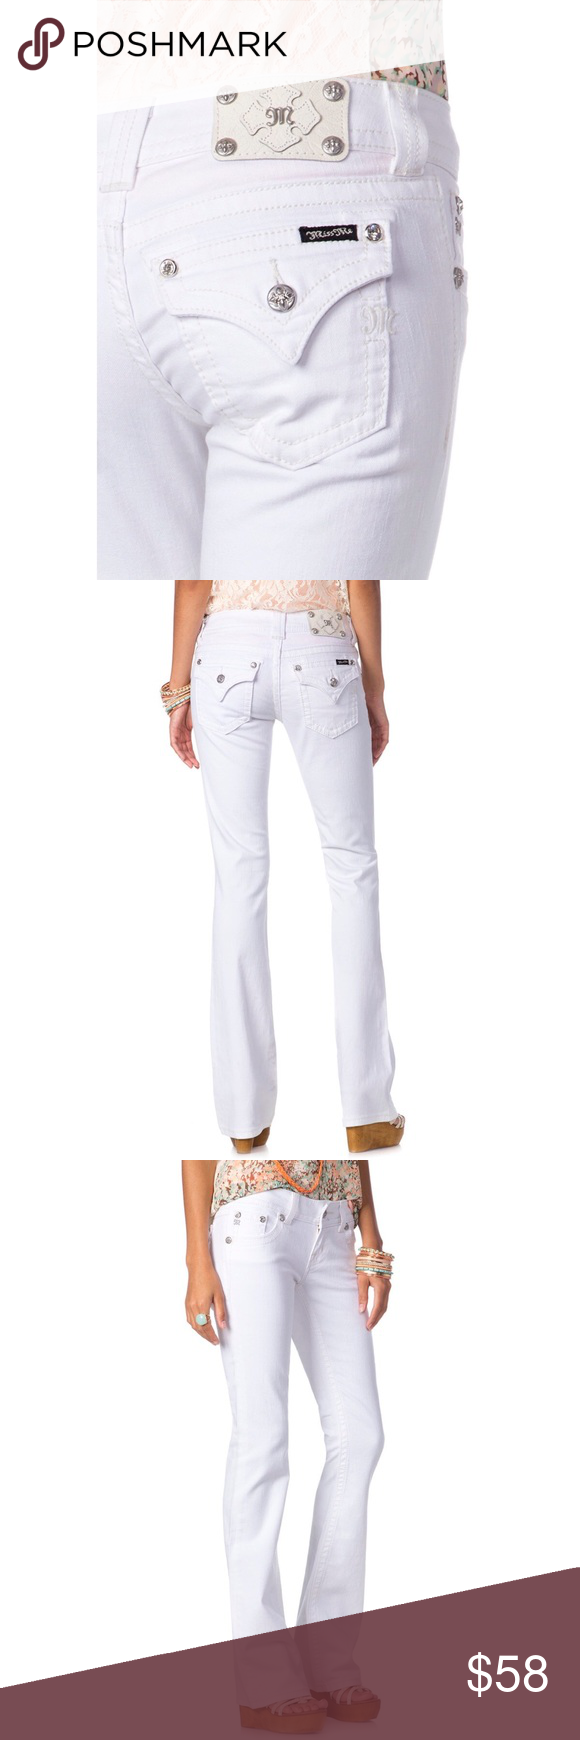 "Miss Me White Bootcut Jeans Adorable, immaculate condition Miss Me white denim boot cut jeans featuring flap pockets, crystal rivers, and silver logo hardware. 98% cotton. 2% Elastane. Size 27. Inseam 34"". Miss Me Jeans Boot Cut"